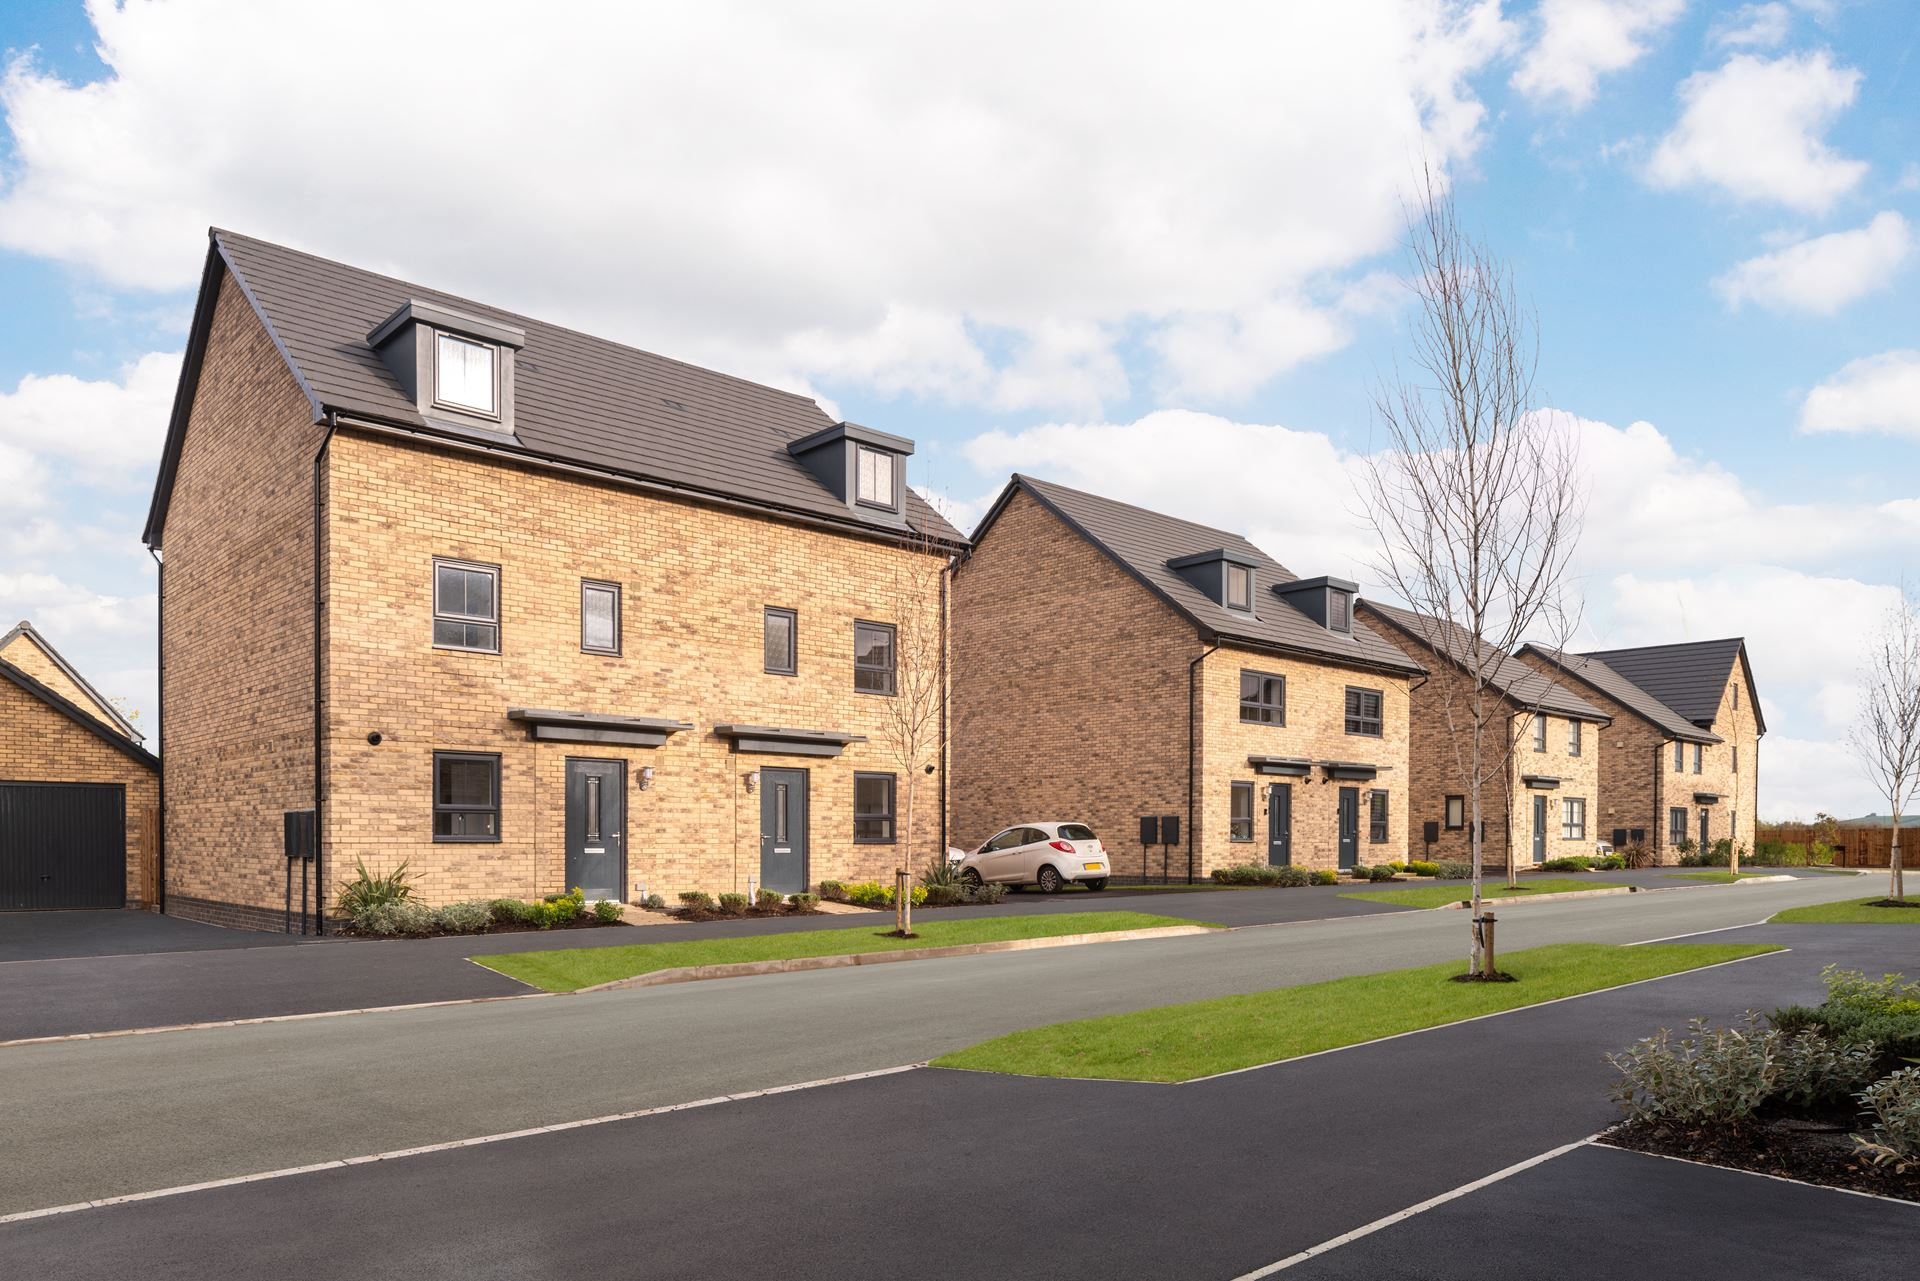 Outside view of the Kingsville housetypes at Canalside @ Wichelstowe, Swindon. 4 bed homes.